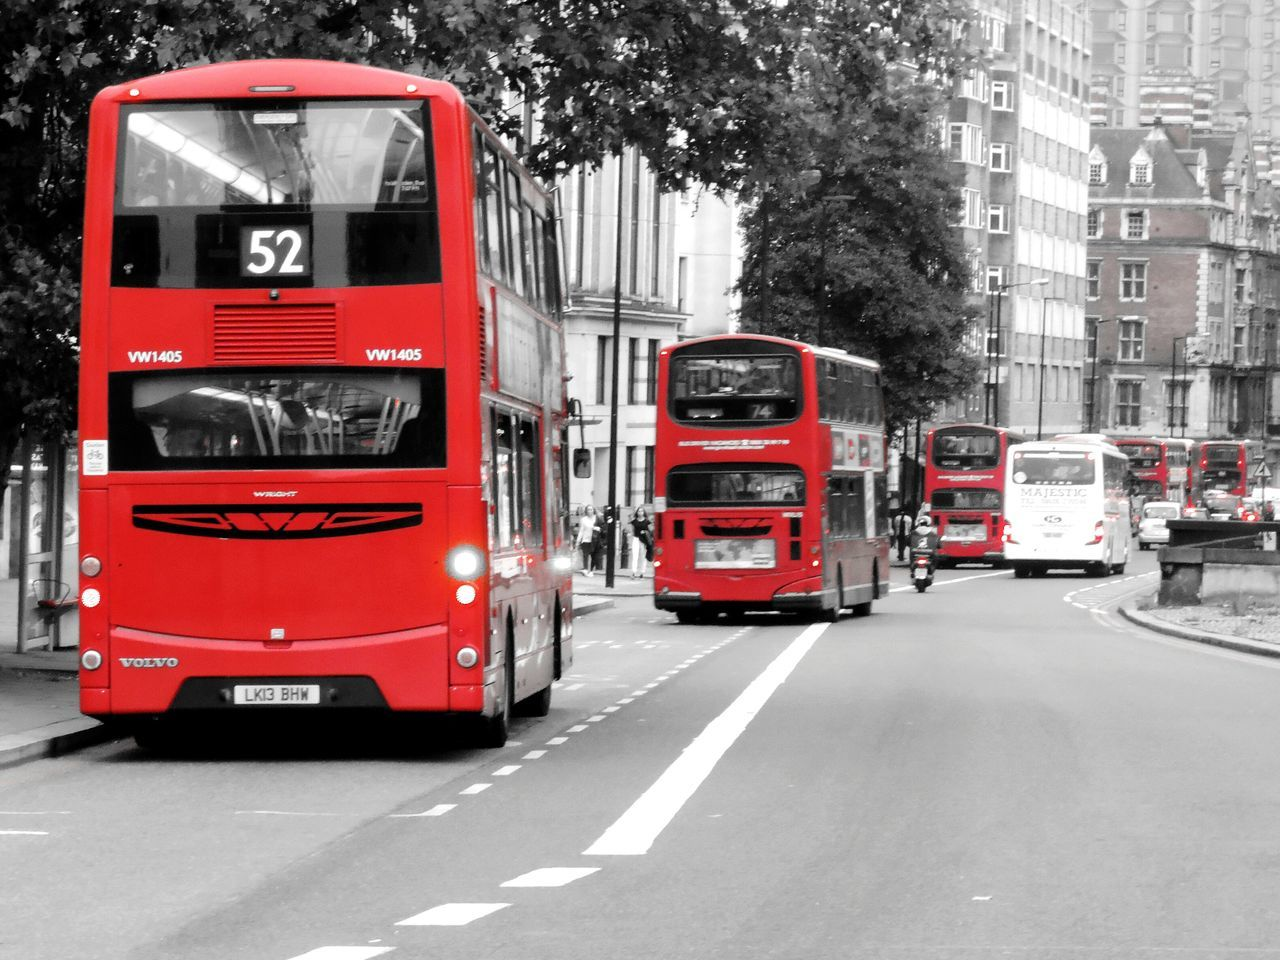 Bustour Transportation Red Travel City Sightseeing LONDON❤ Bus London Lifestyle Londonbus Street Finding New Frontiers